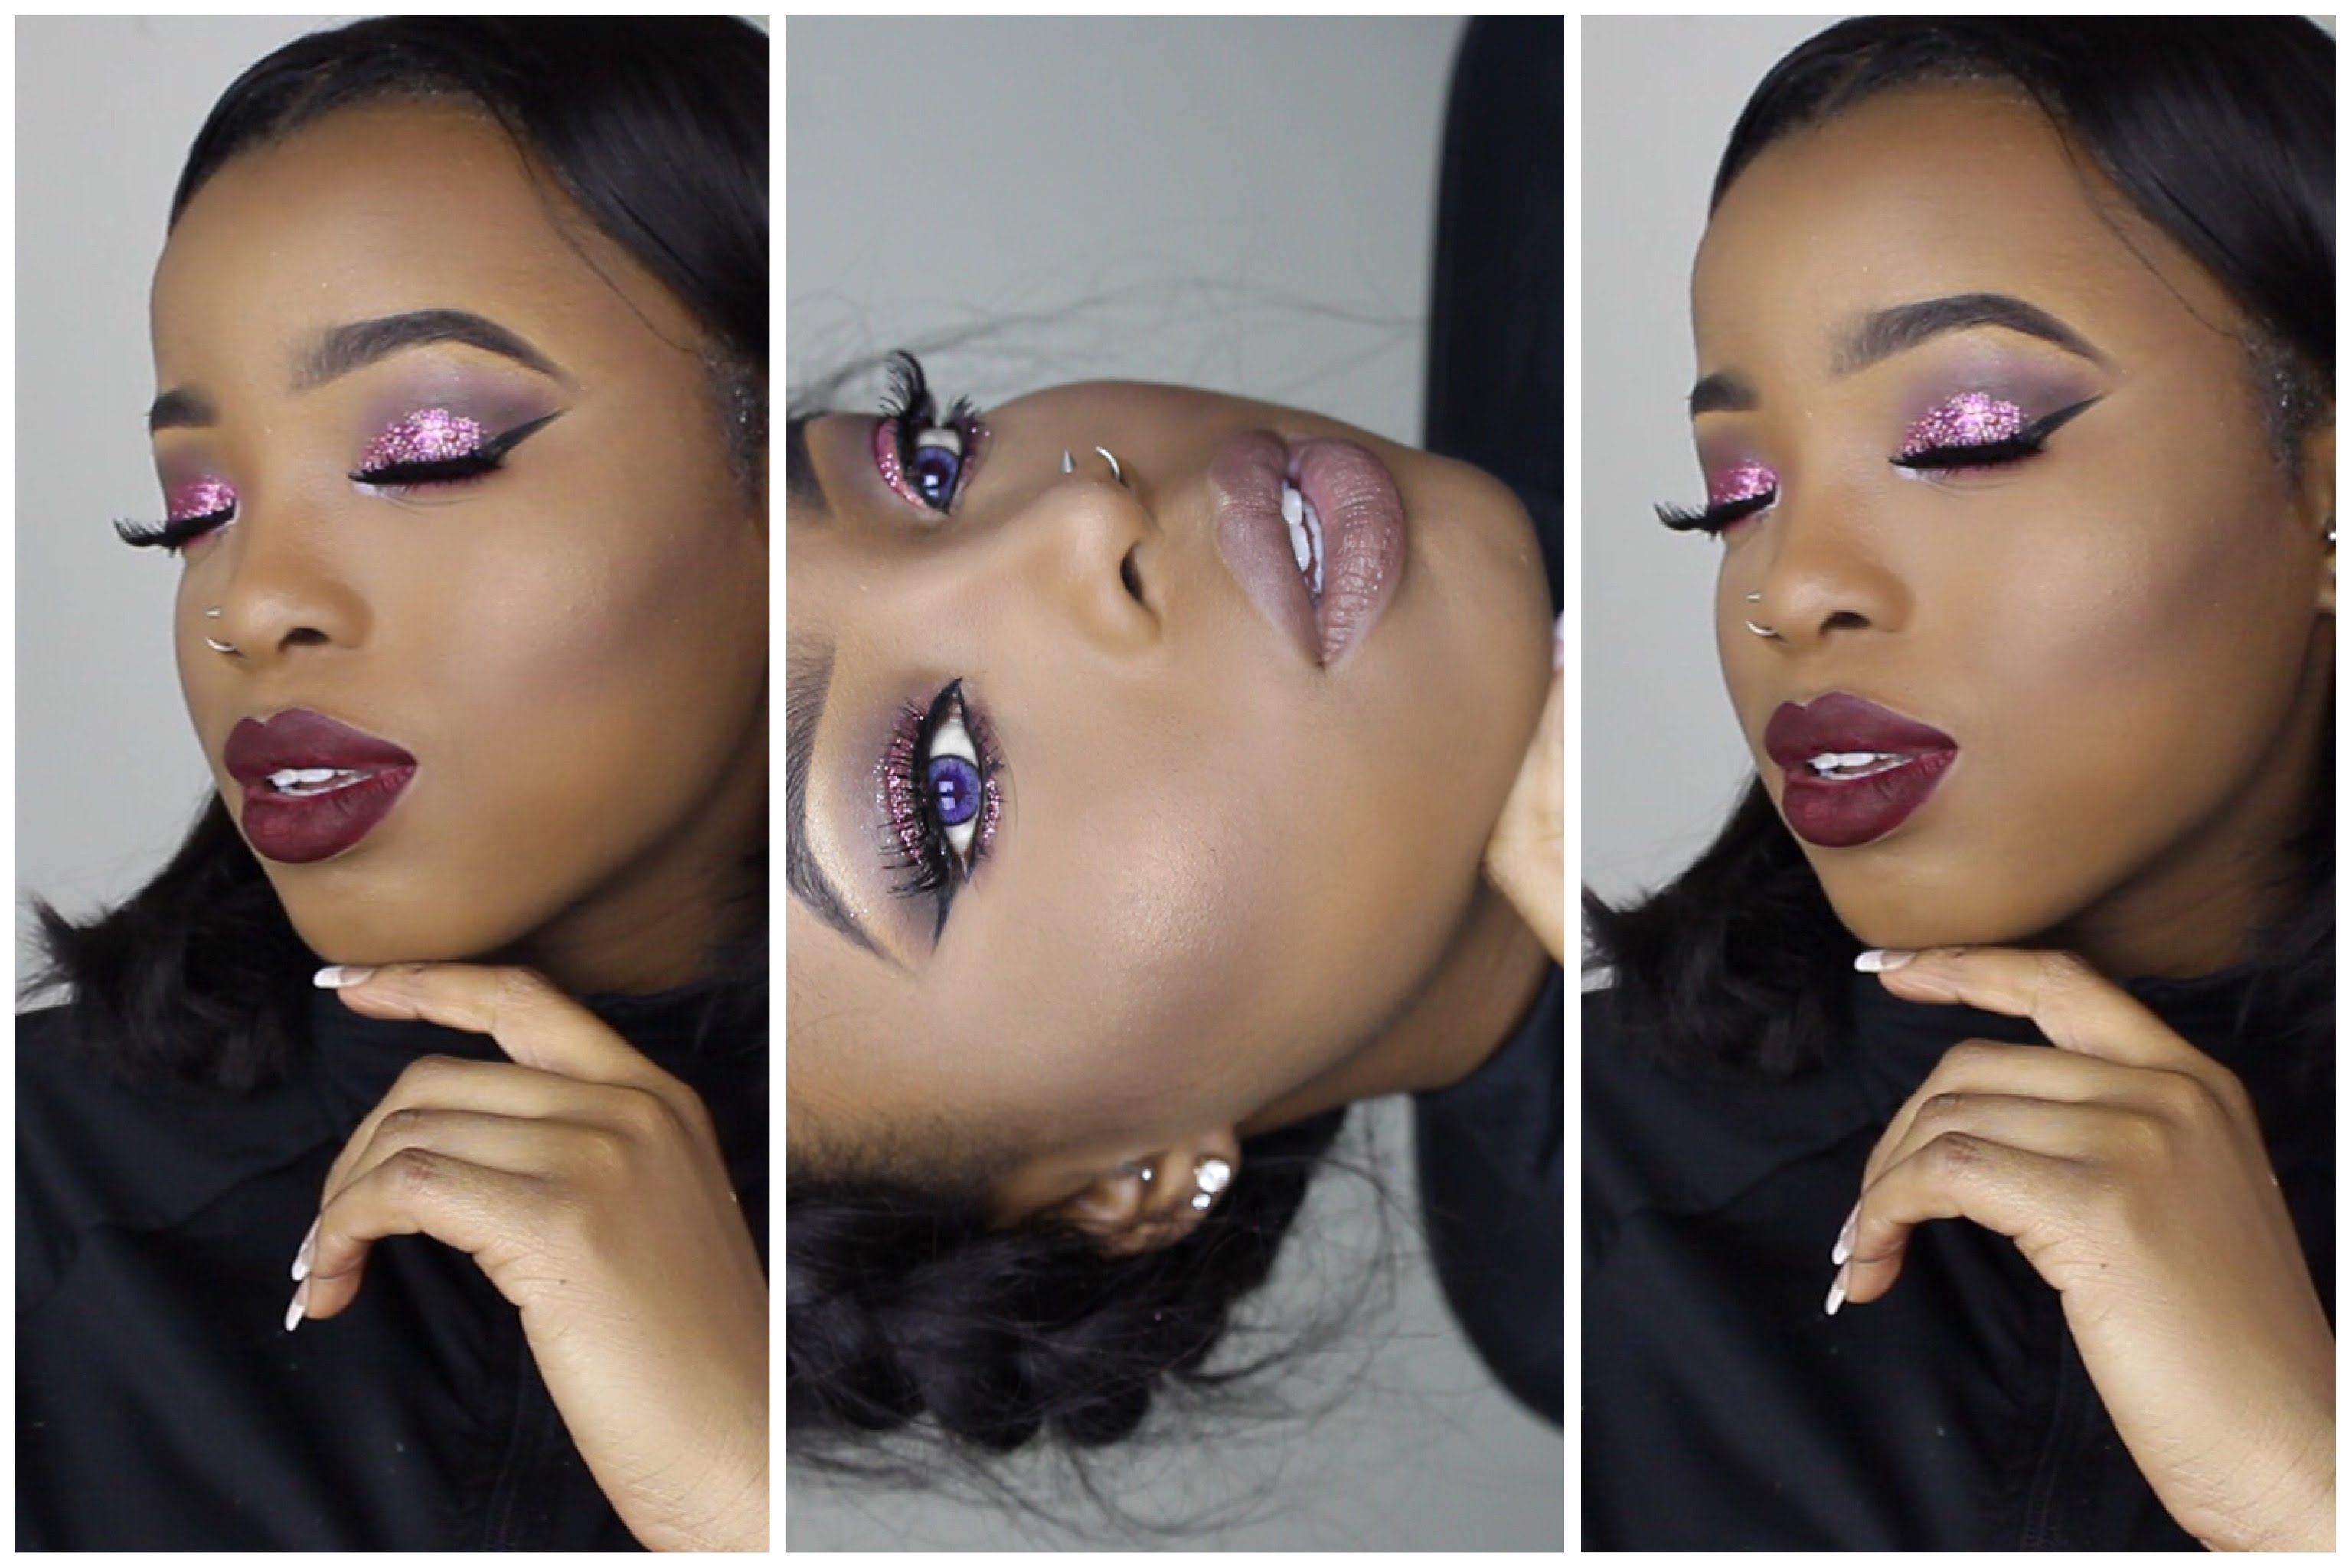 Night out full face makeup tutorial wjanielle wright how to use night out full face makeup tutorial wjanielle wright how to use eyes baditri Gallery